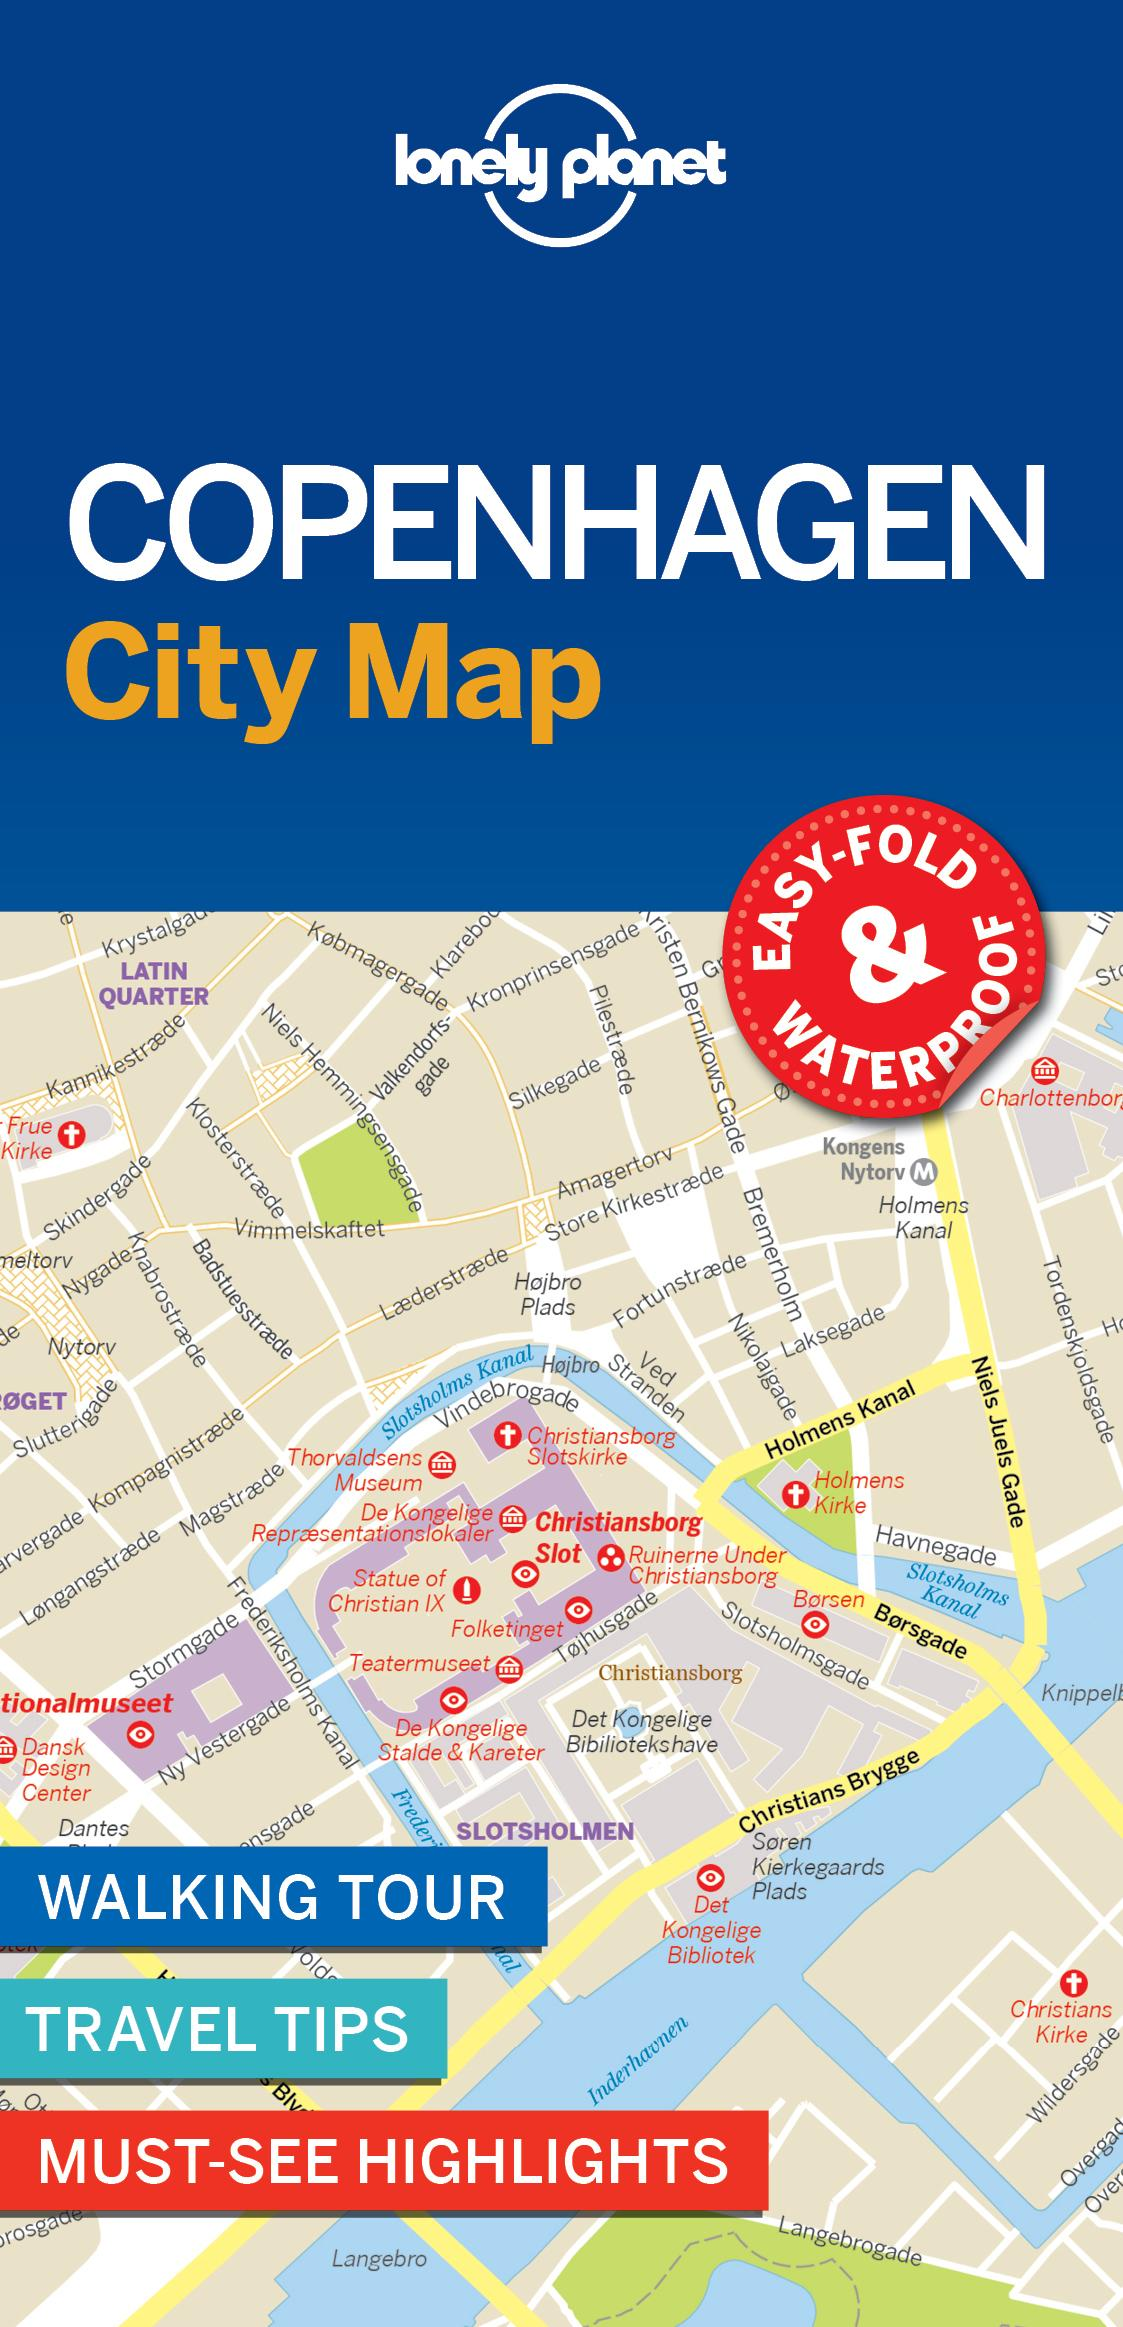 Lonely Planet Copenhagen City Map: Lonely Planet